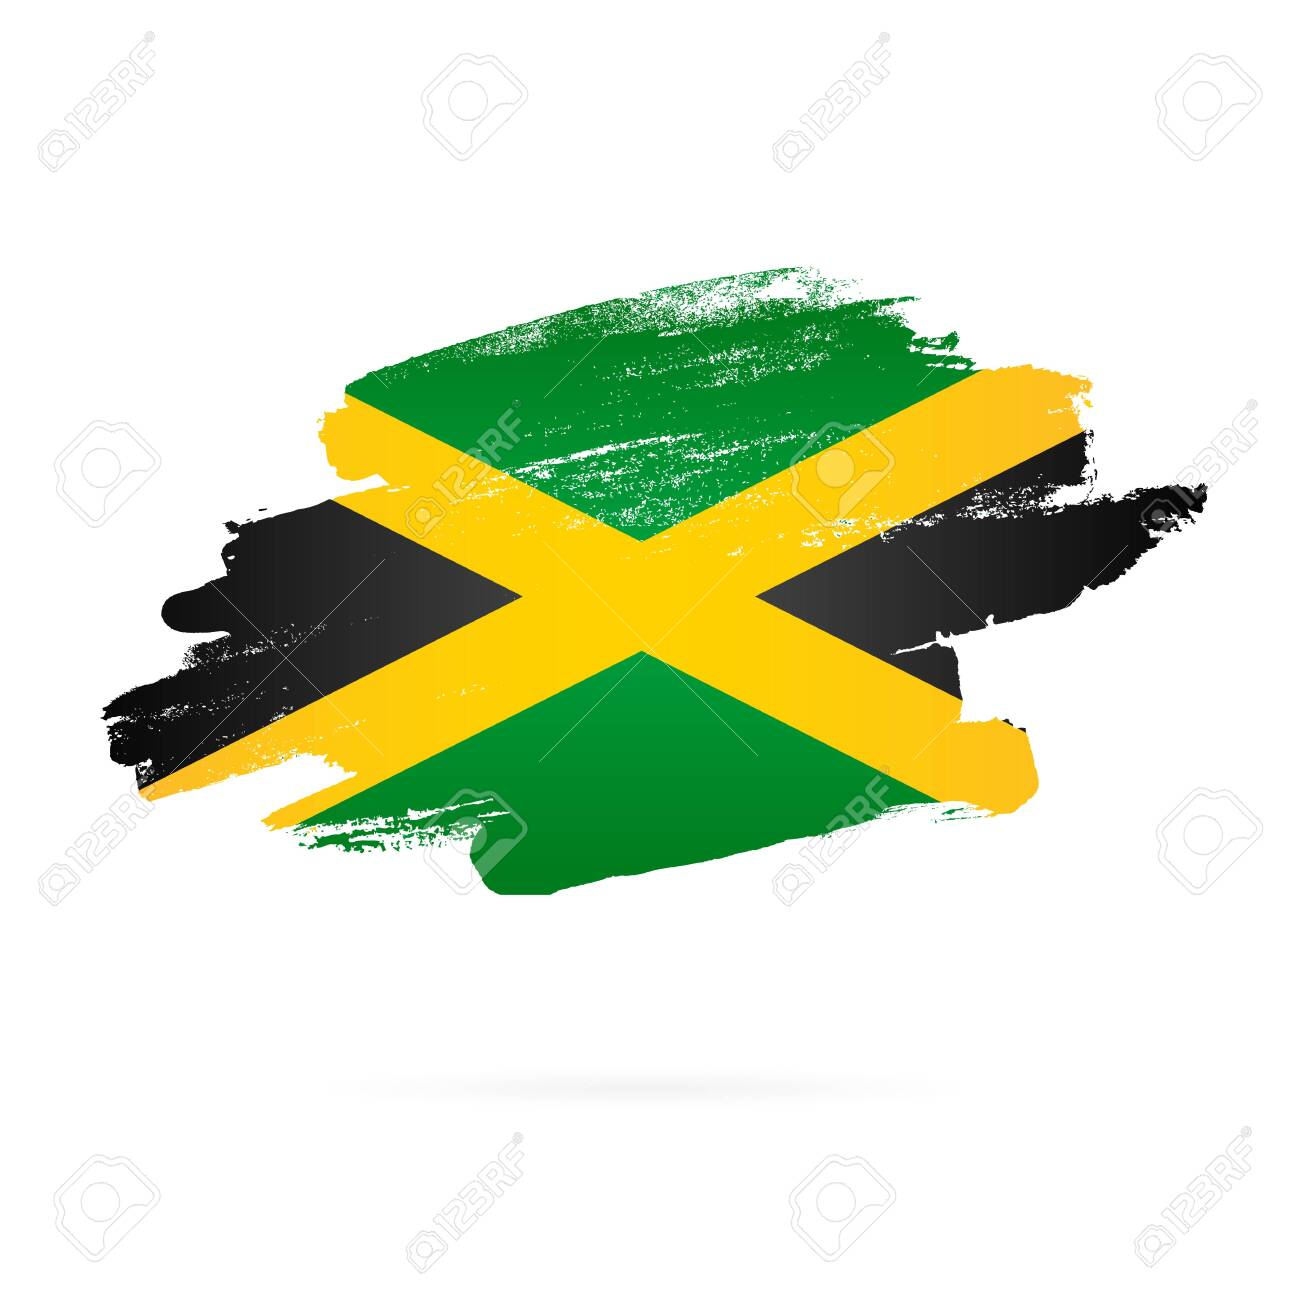 Jamaican Flag Vector Illustration On White Background Brush Royalty Free Cliparts Vectors And Stock Illustration Image 128155099